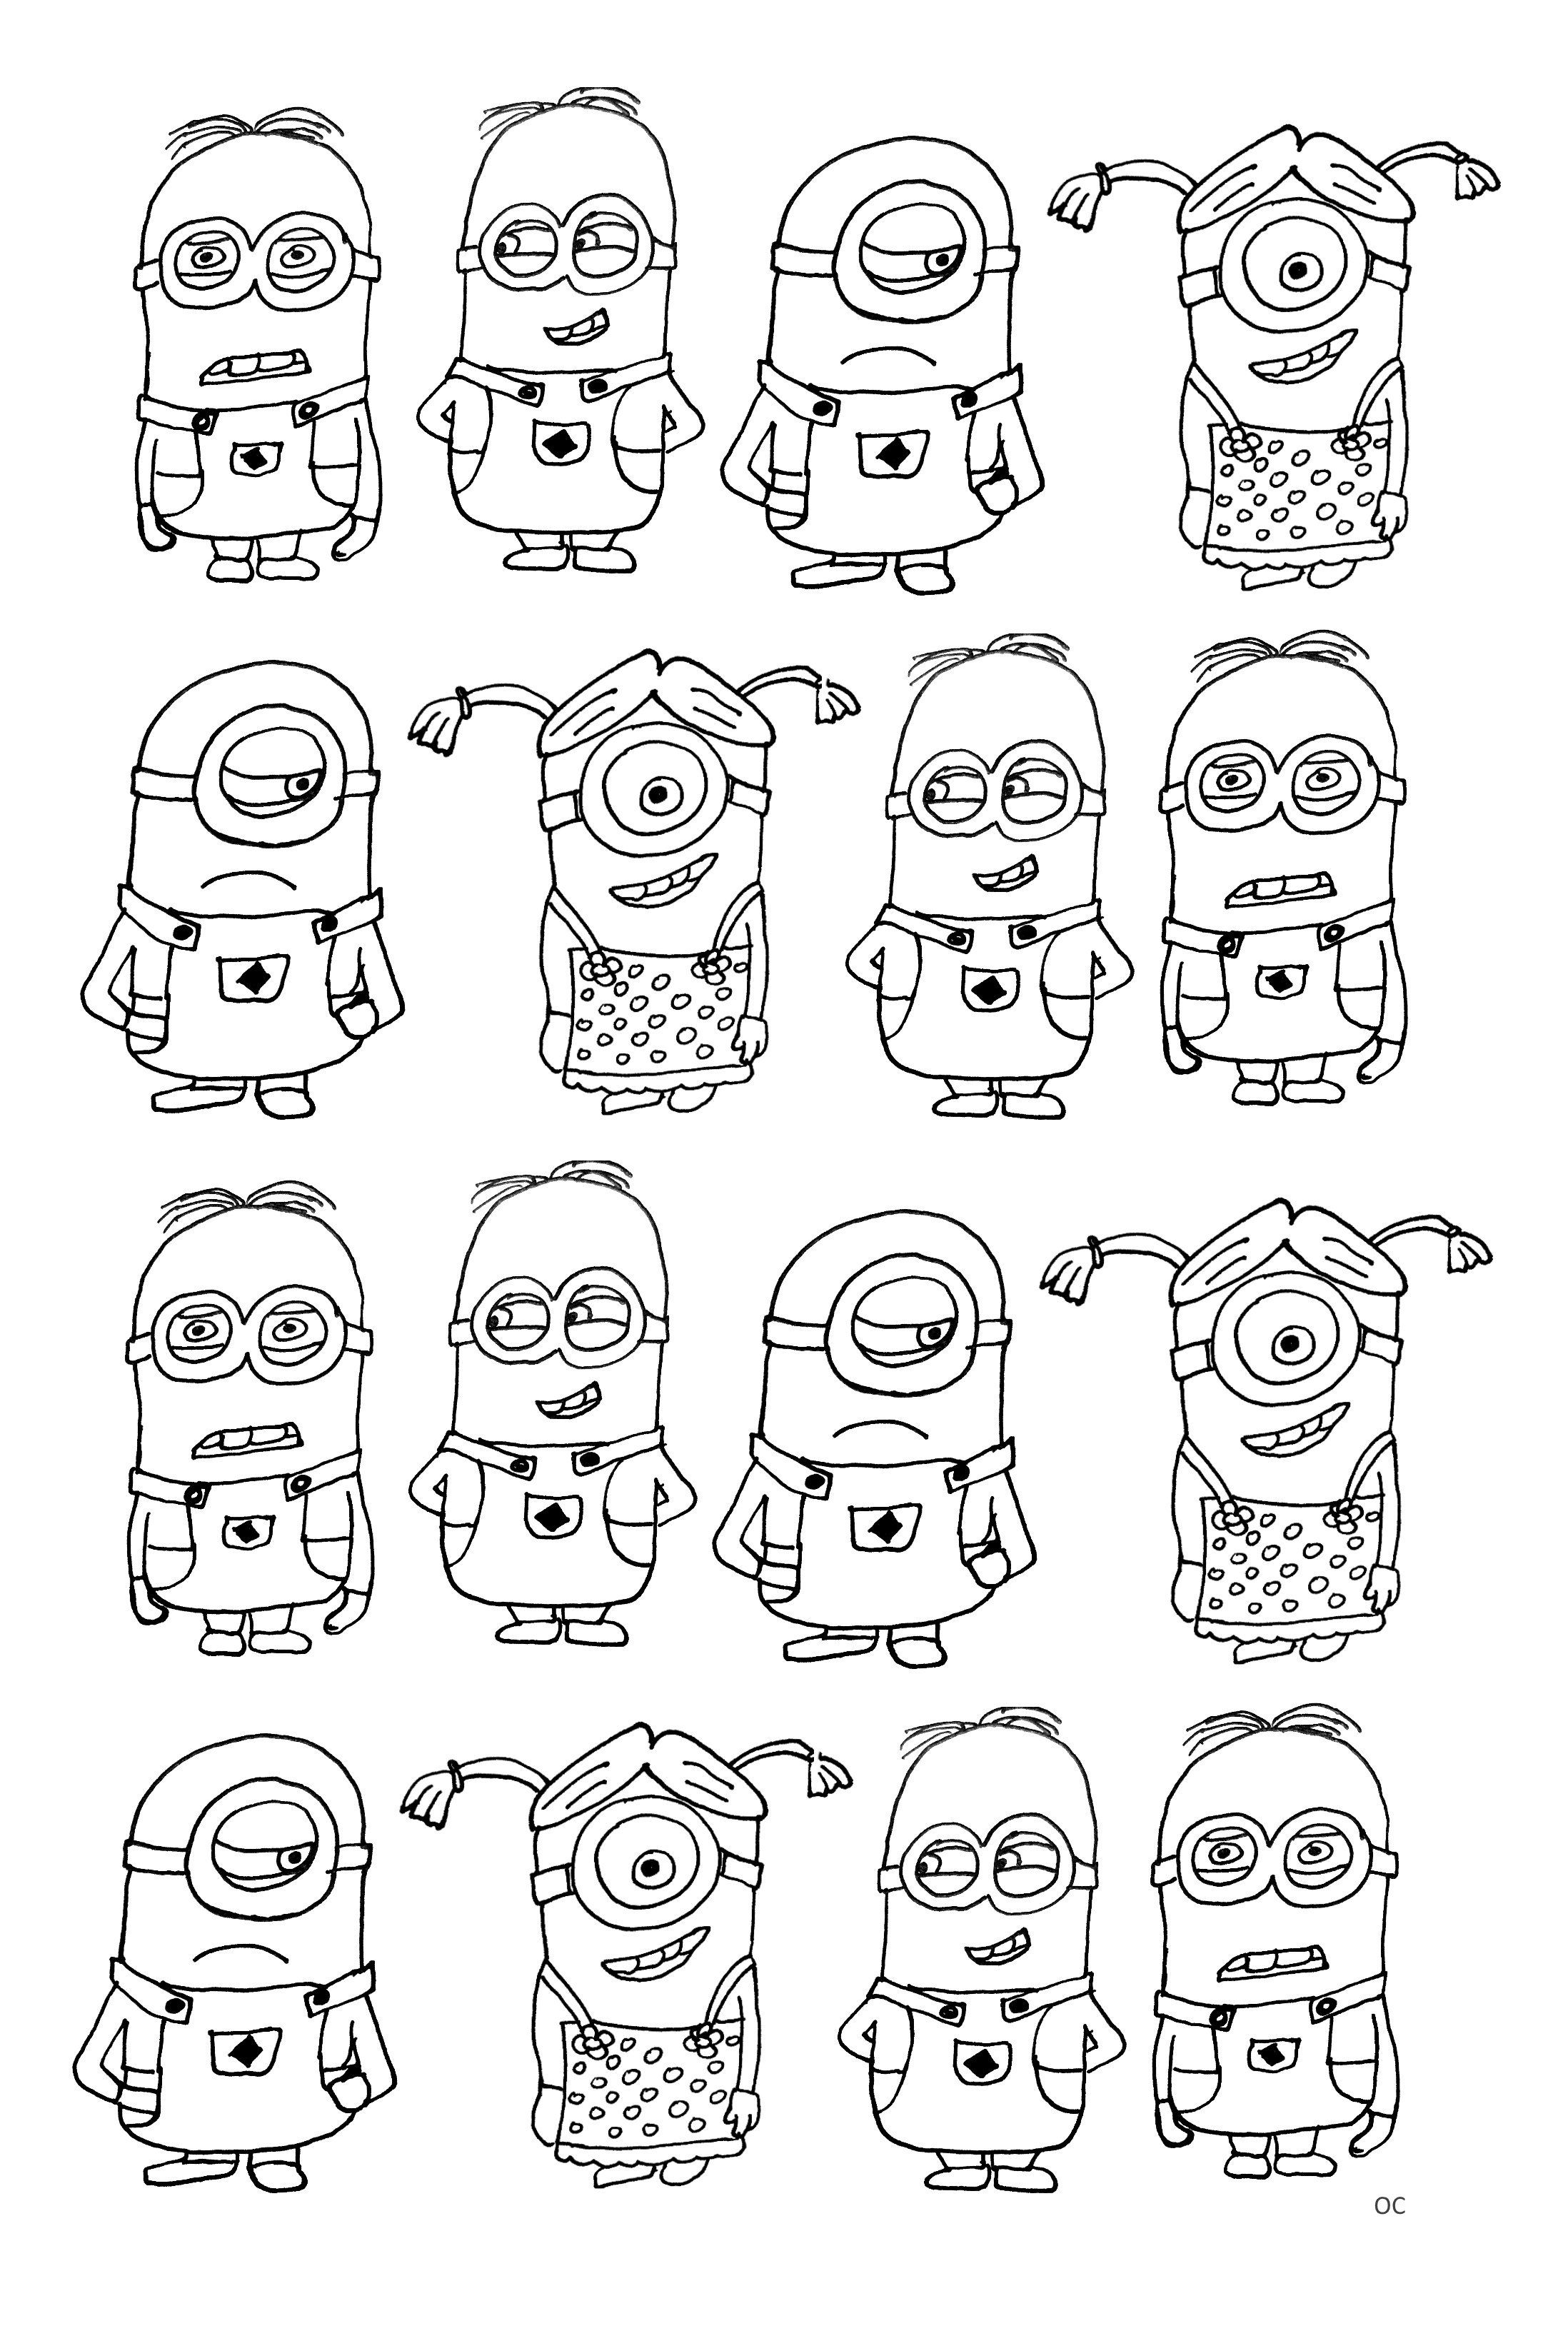 coloring-numerous-minions, From the gallery : Unclassifiable ...